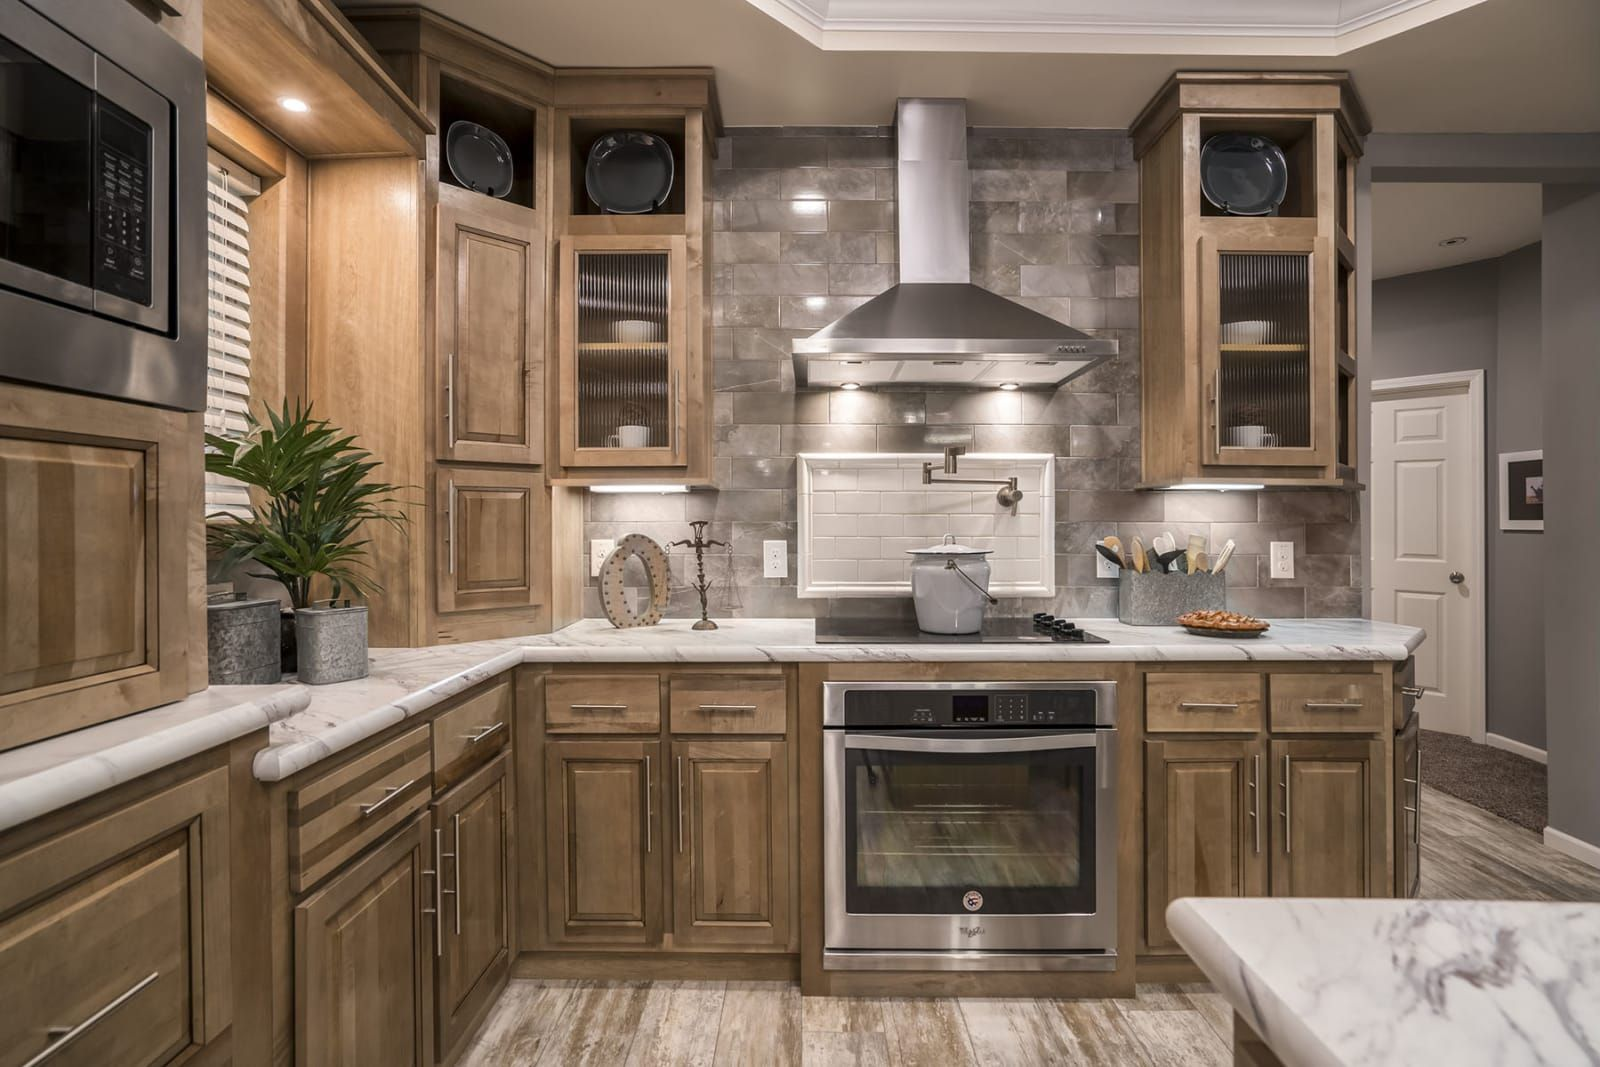 Kitchen With Stainless Steel Range Hood Glass Cooktop Farmhouse Sink Mobile Home Floor Plans House Floor Plans Manufactured Home